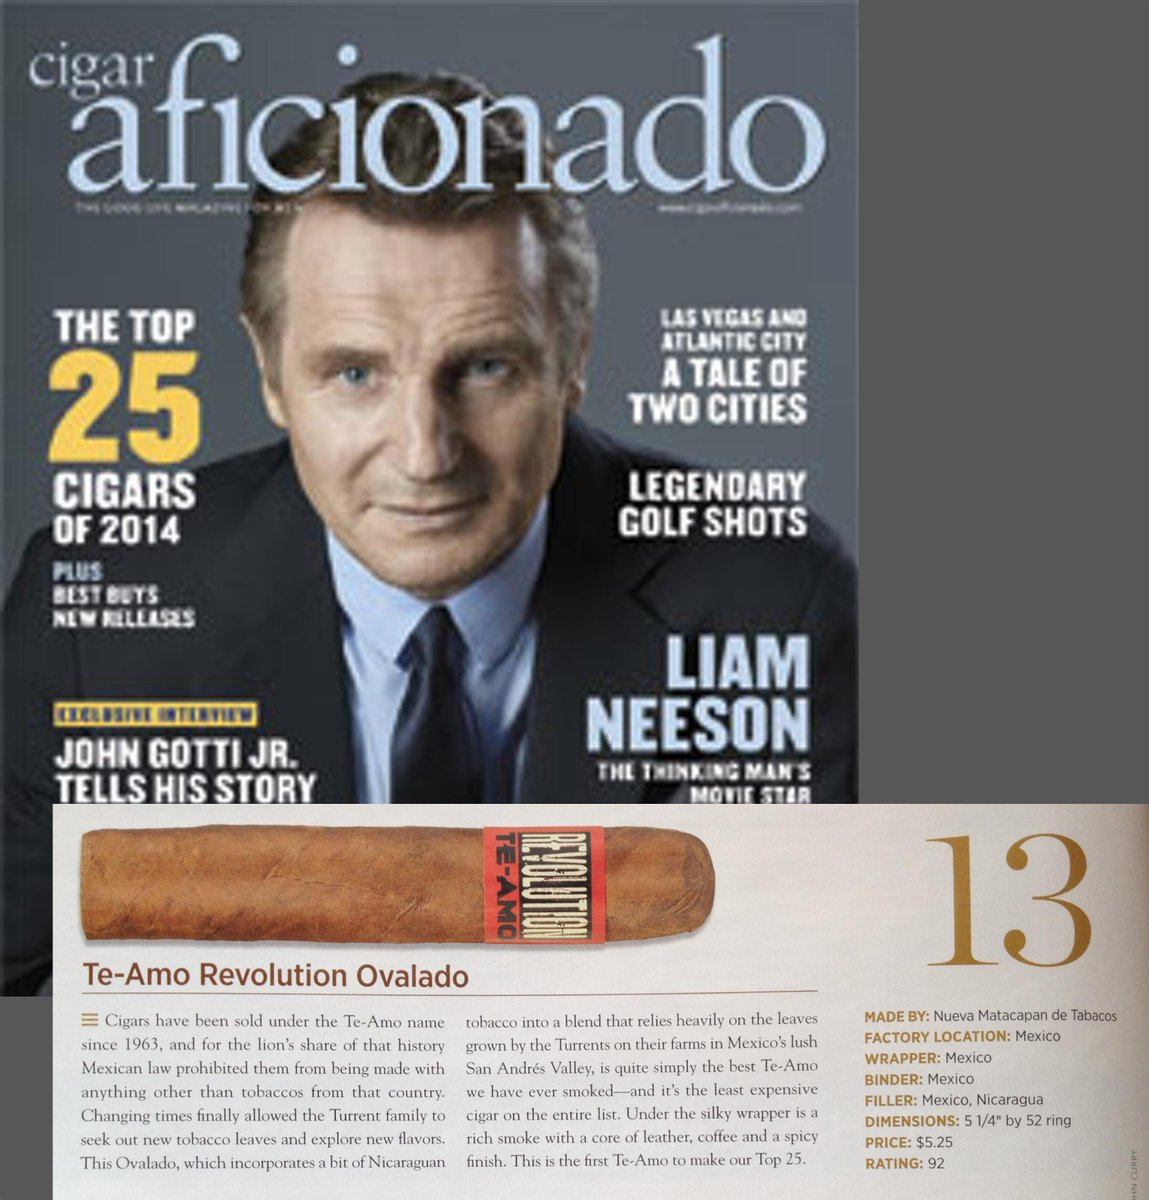 We made it to the CigarAficionado's 25 Top Cigars of 2014 @CigarAficMag #cigars #cigarlife http://t.co/XRFvVSL724